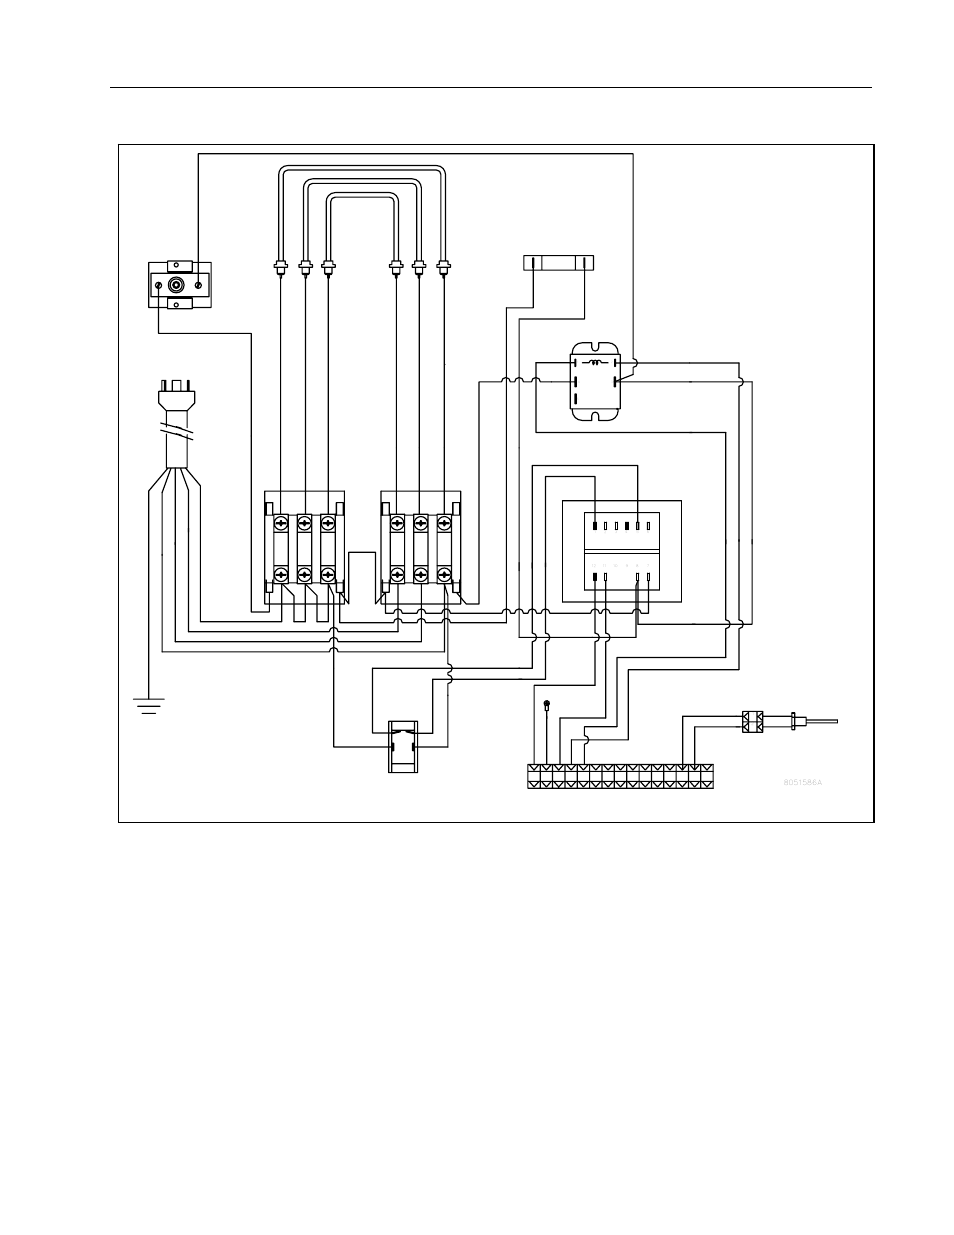 3 wiring diagram 3-phase wye | Frymaster Dean SR114E User ... on